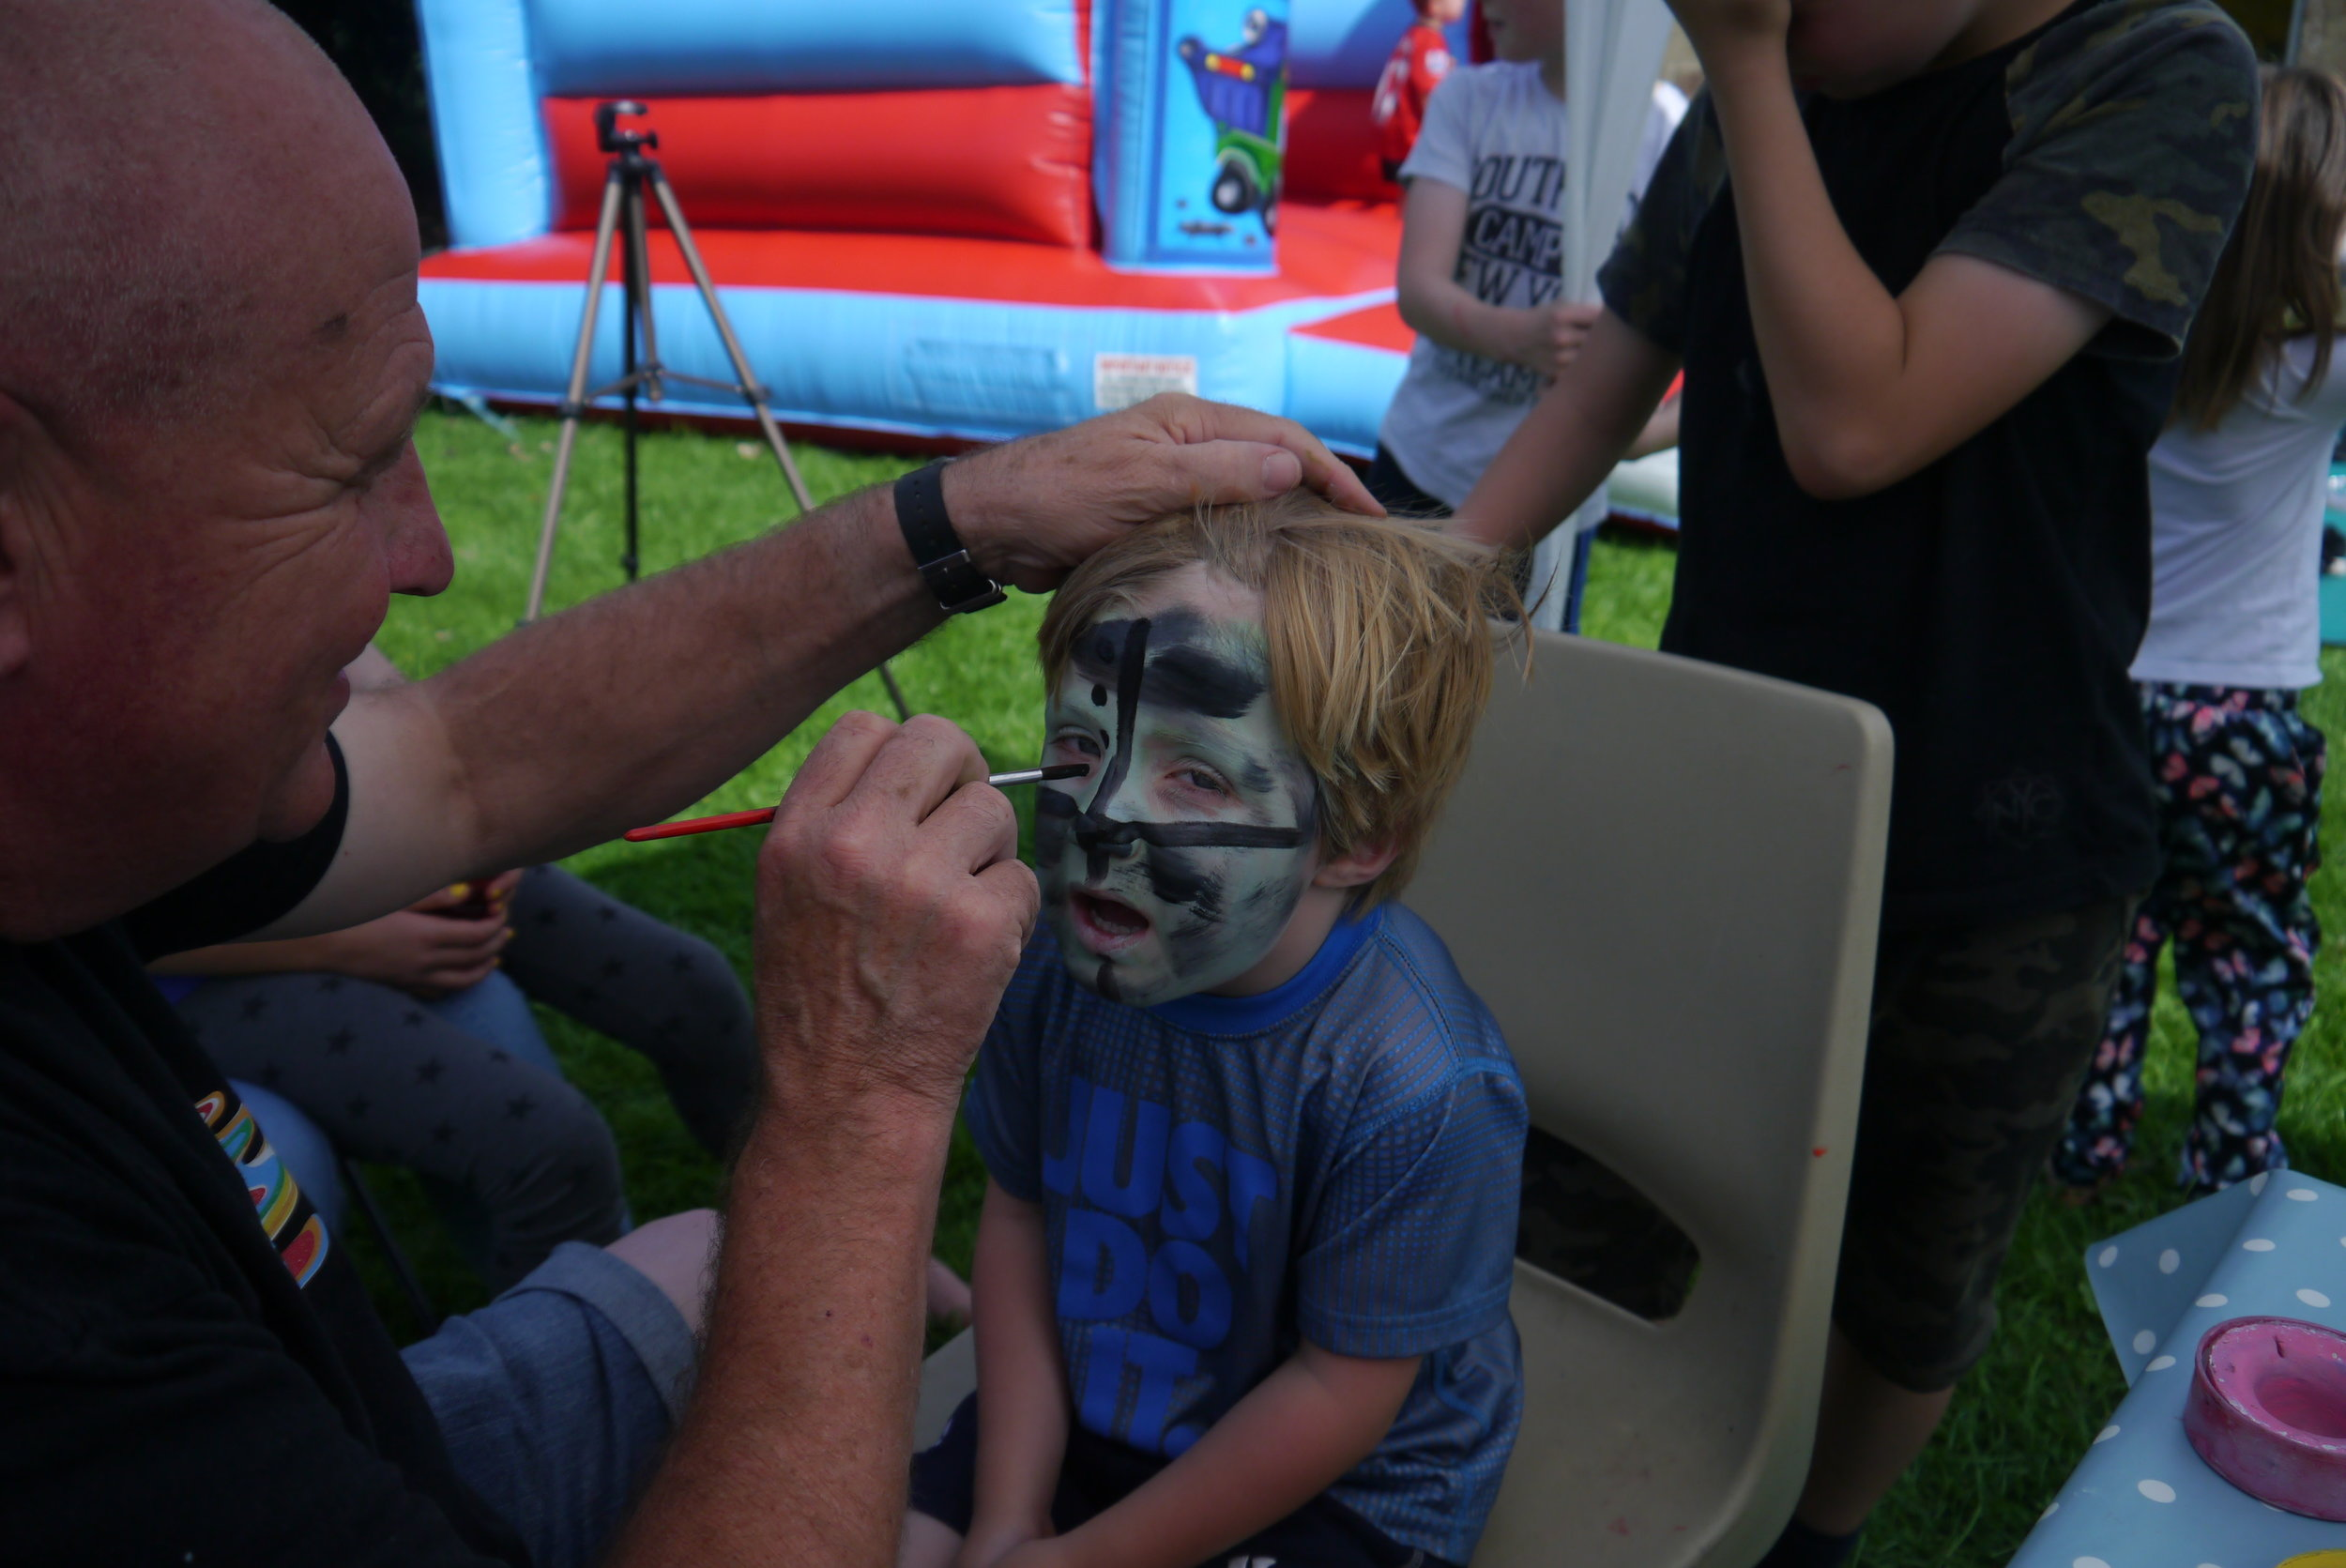 Community Events - Community Events are open to all and we work hard to keep them cost free or donations only so they are available to all those living in the parish. Go to and like our Facebook page if you are interested in getting notification of these events: www.facebook.com/stbarnabasbath